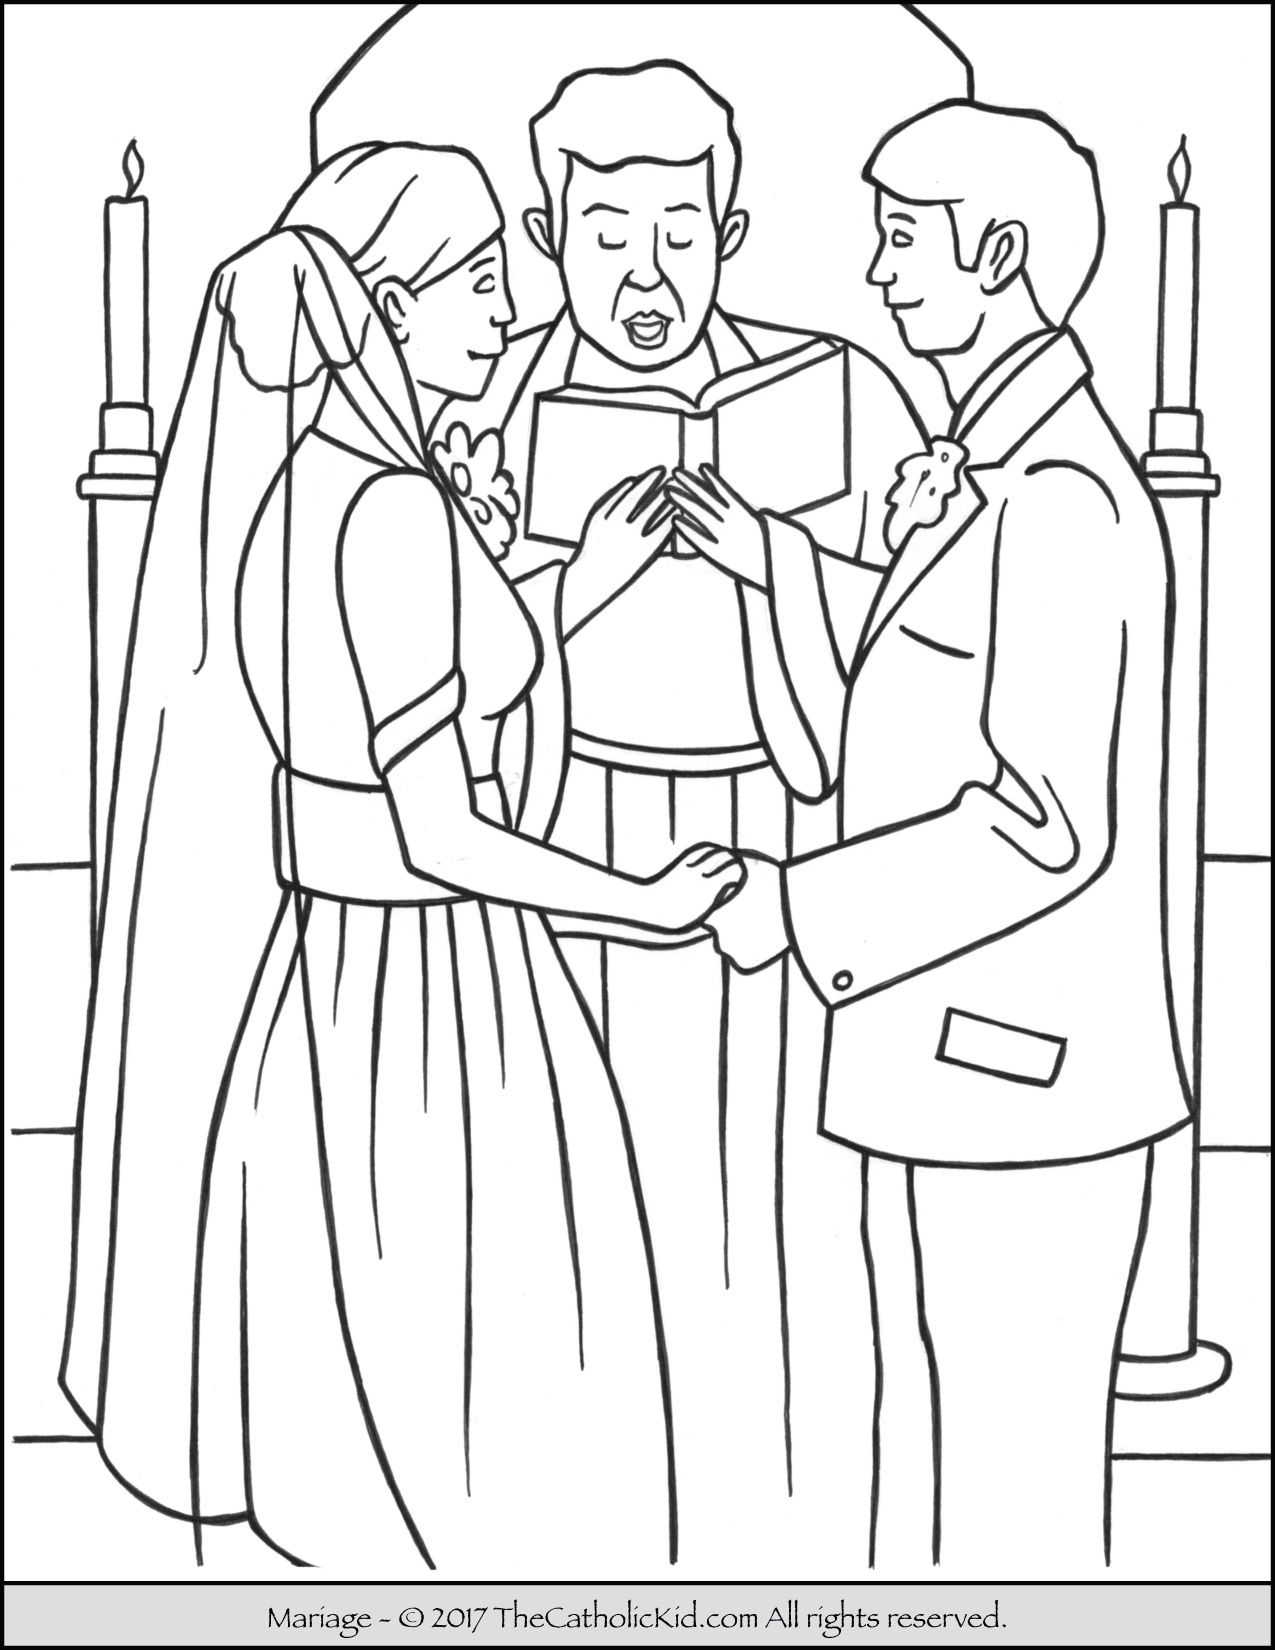 Sacrament Marriage Coloring Page